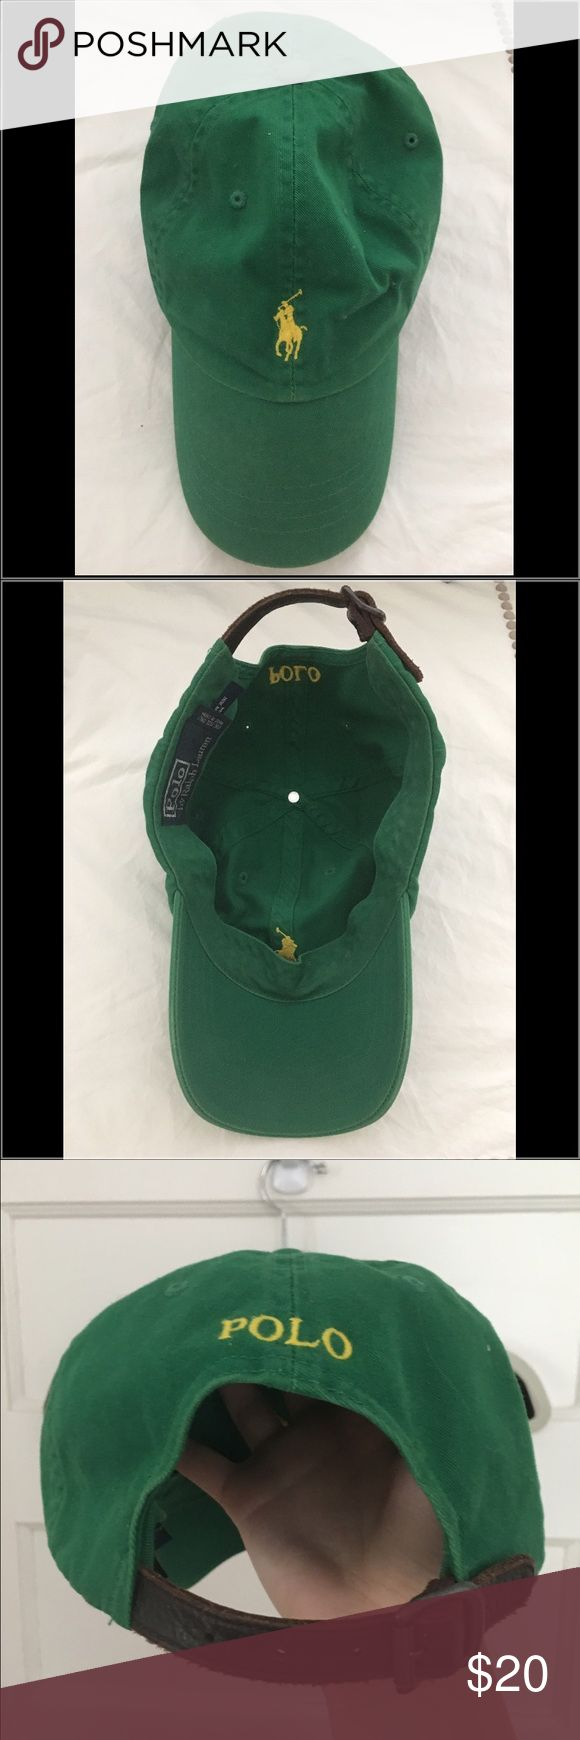 Ralph Lauren Polo hat - green This polo hat is comfortable and vibrant while also maintaining the classic RL look. Polo by Ralph Lauren Accessories Hats